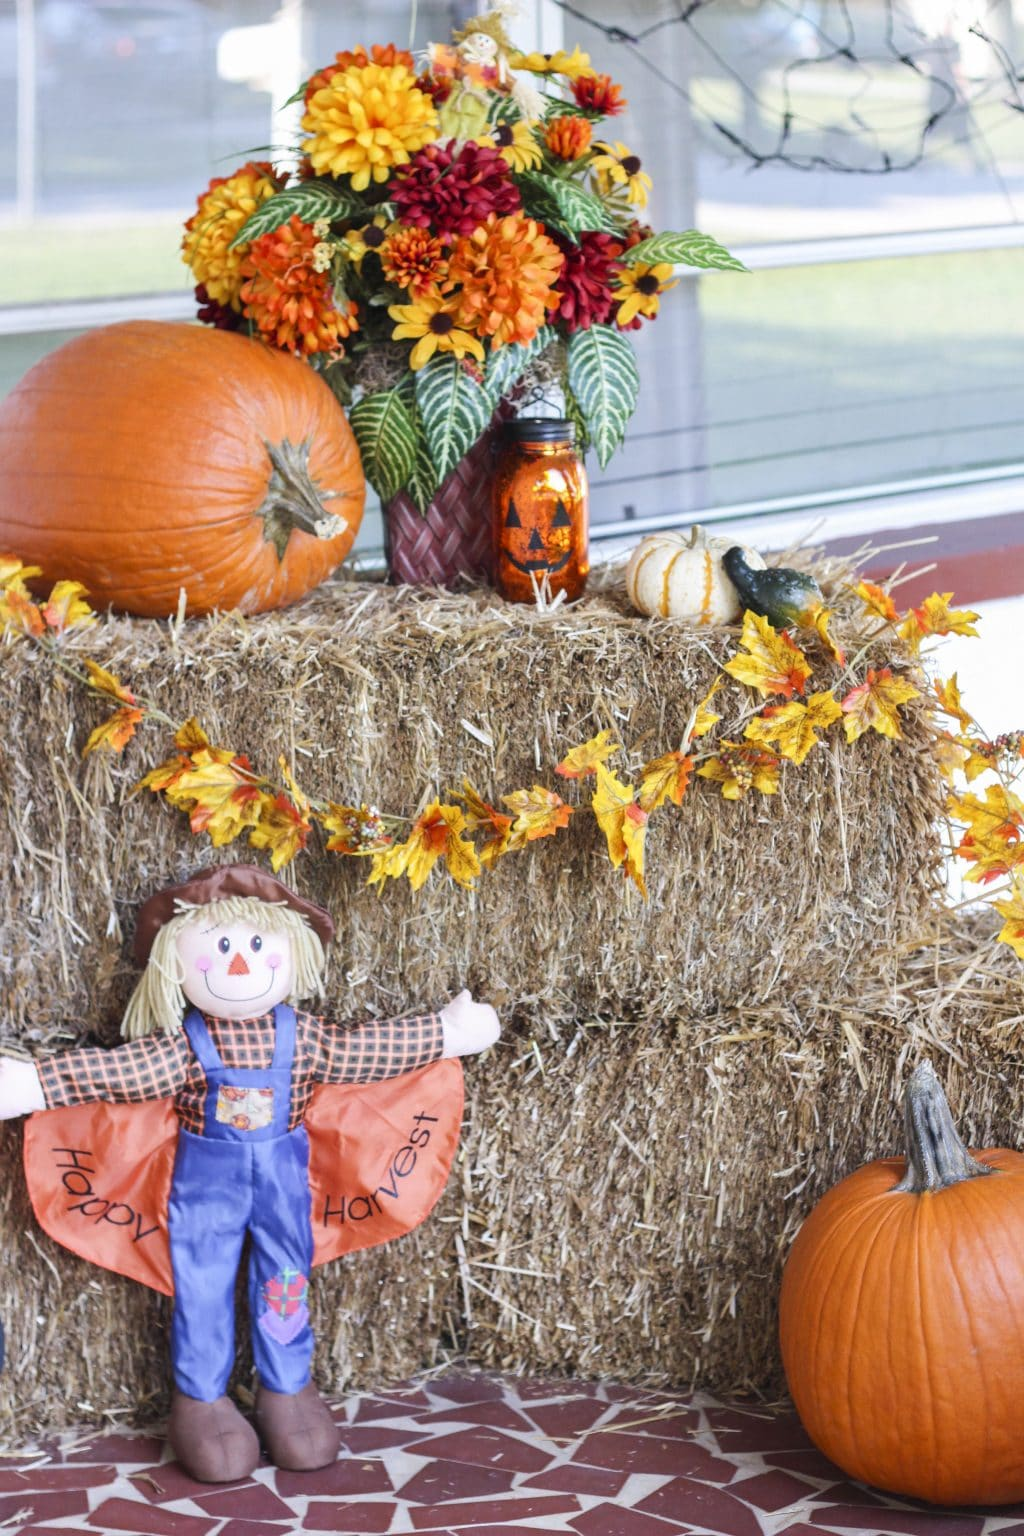 A fall front porch display with flowers, pumpkins, a scarecrow and fall decor.